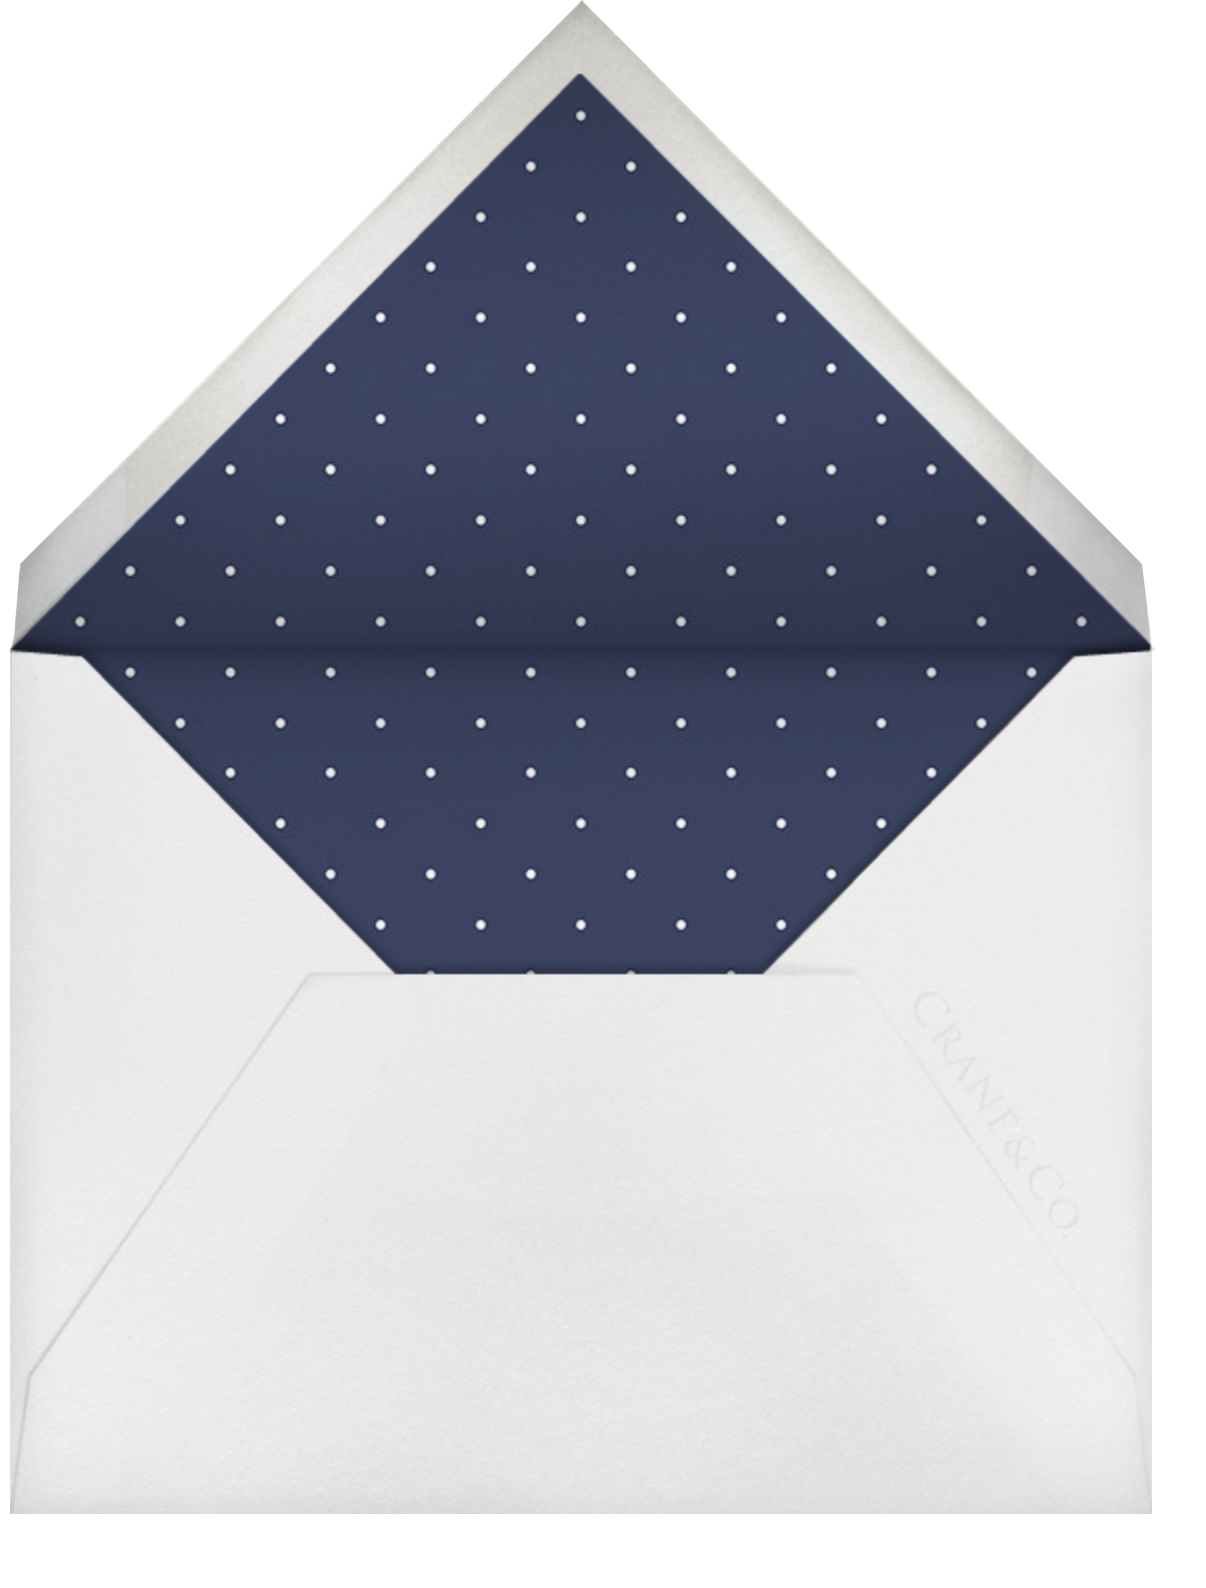 Double Loop Frame I (Invitation) - Navy  - Paperless Post - All - envelope back